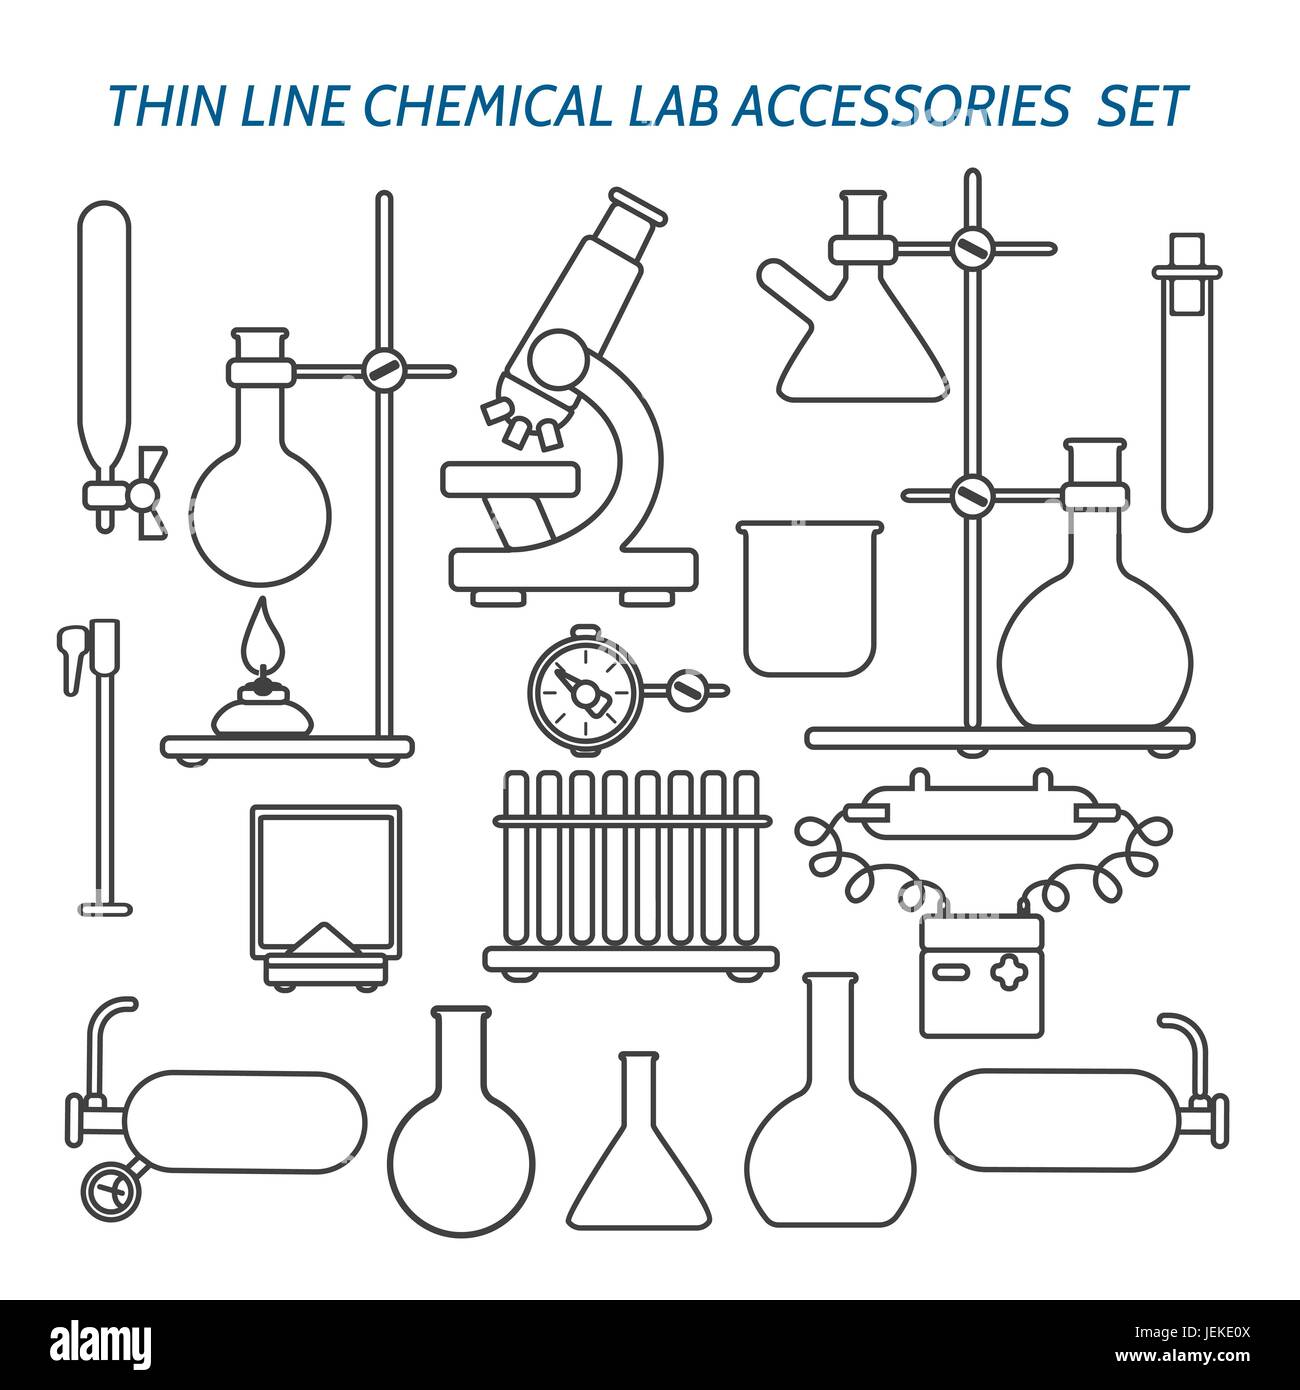 Thin line chemical lab equipment and accessories set. Biology science and medical engineering linear vector icons Stock Vector